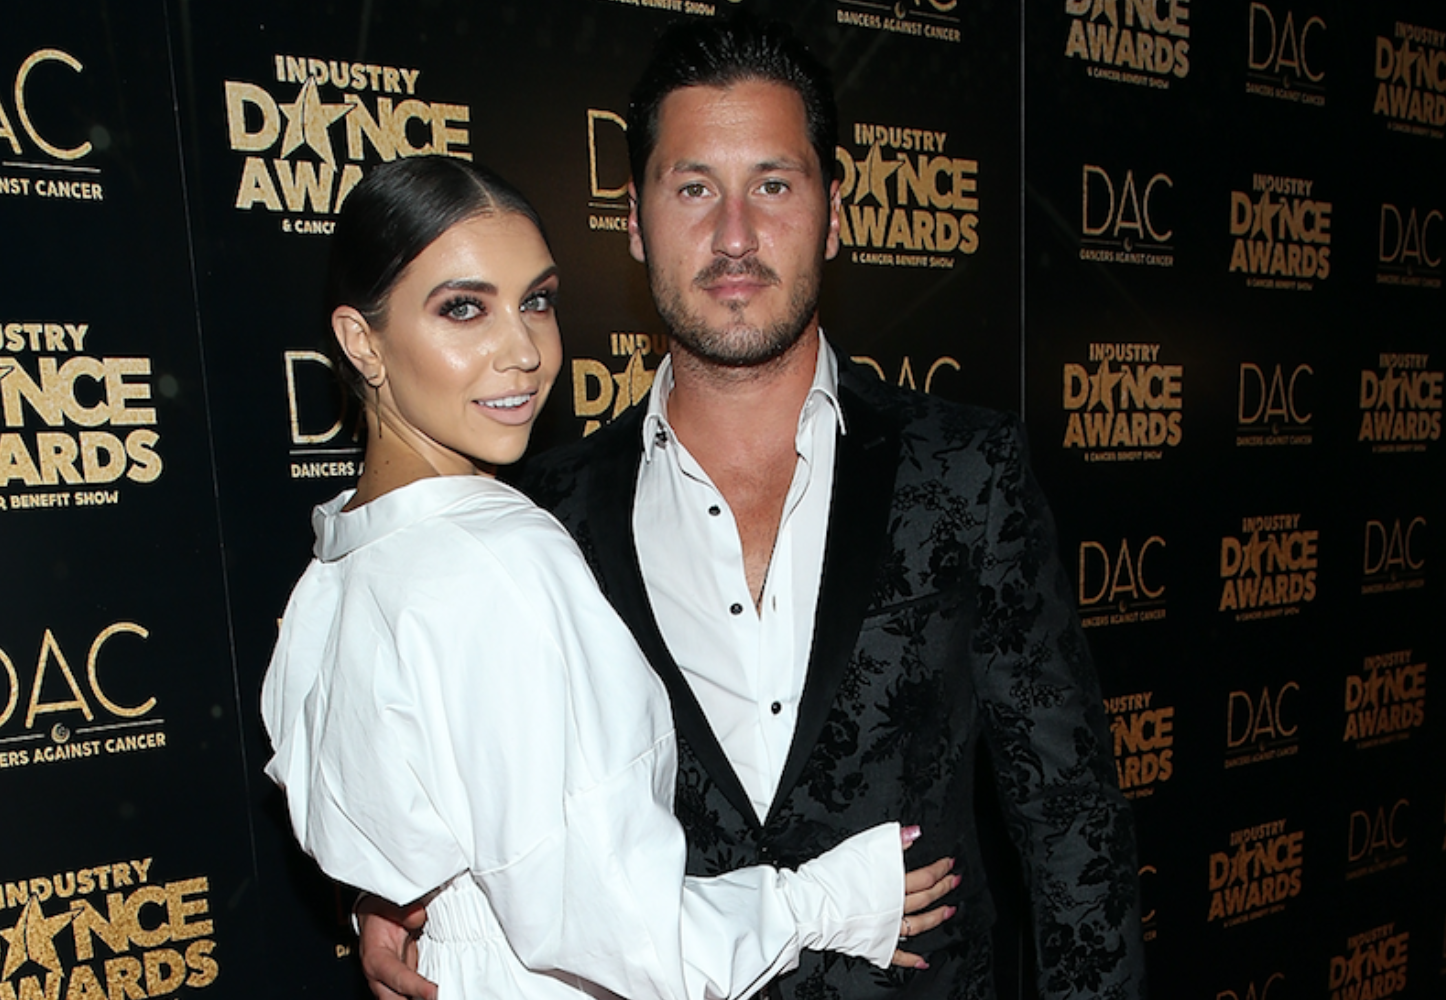 'Dancing with the Stars' Season 27 Pros Announced